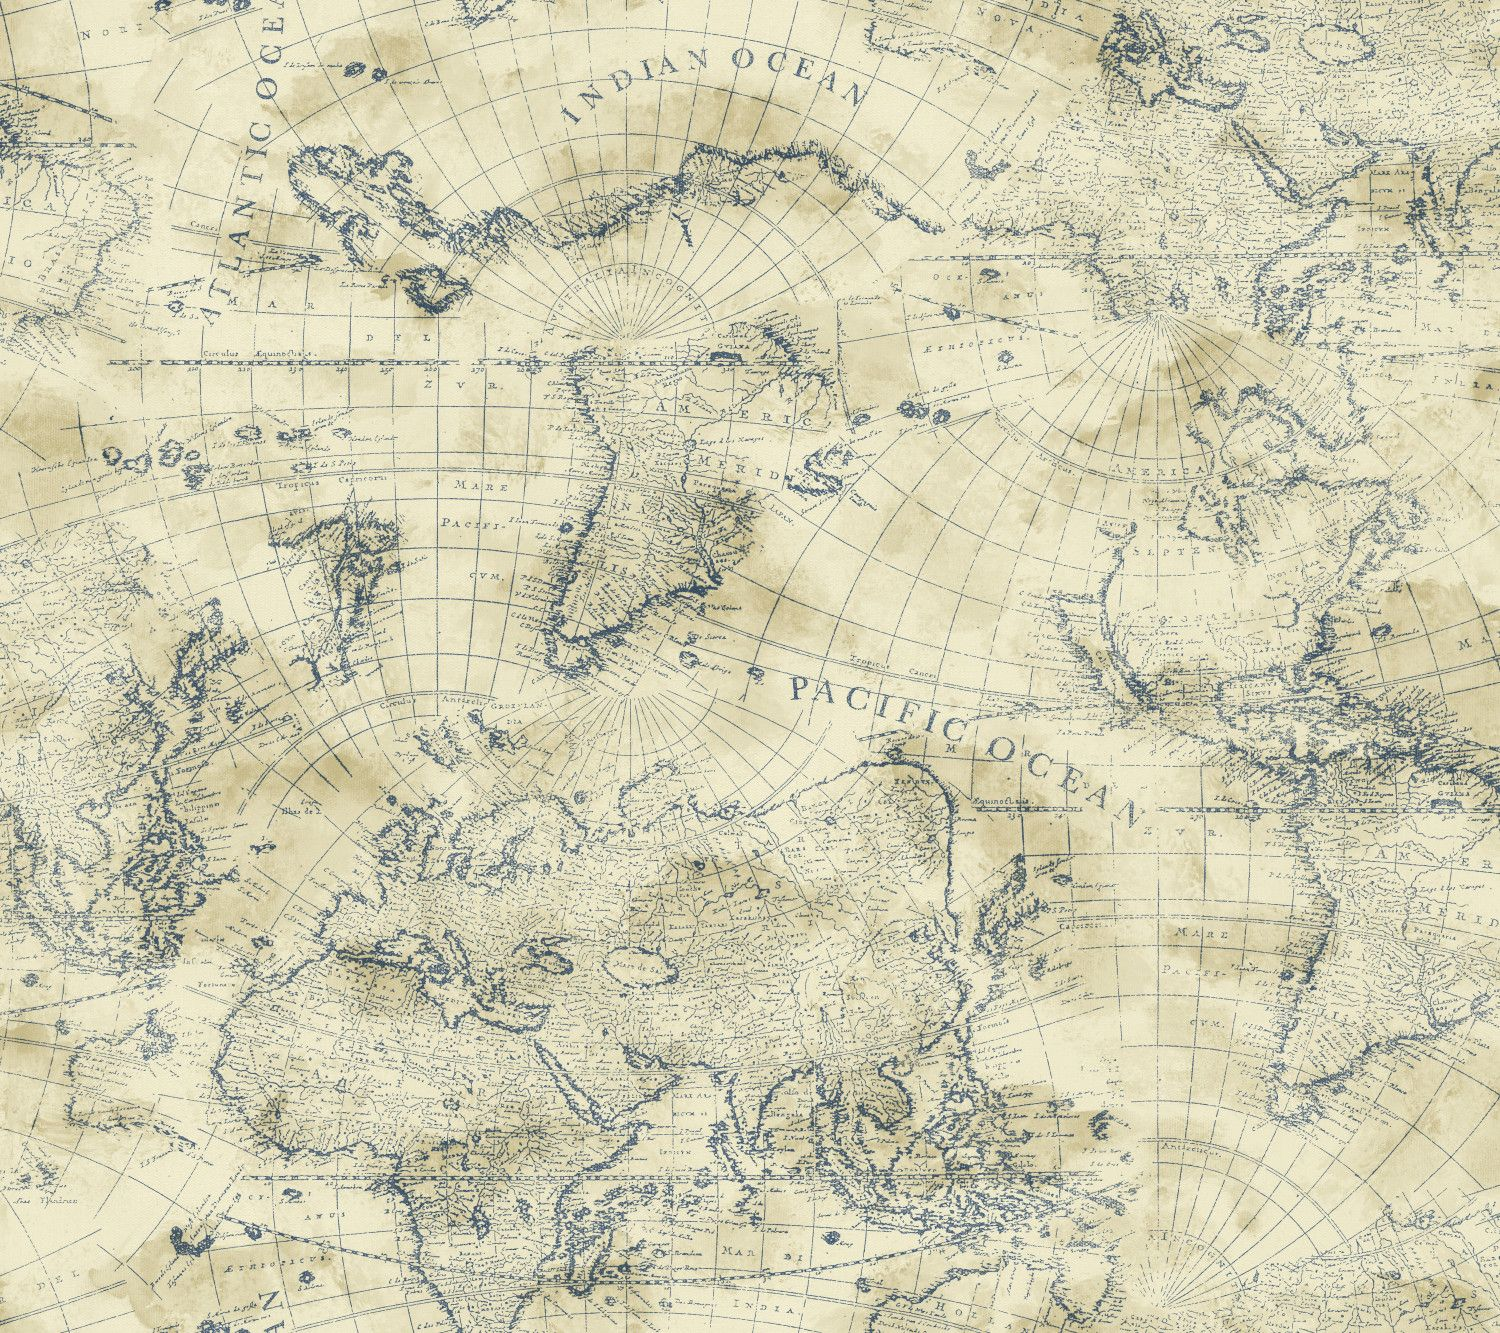 Nautical living coastal map 27 x 27 wallpaper coastal wallpaper nautical living 27 x 27 coastal map wallpaper roll gumiabroncs Image collections